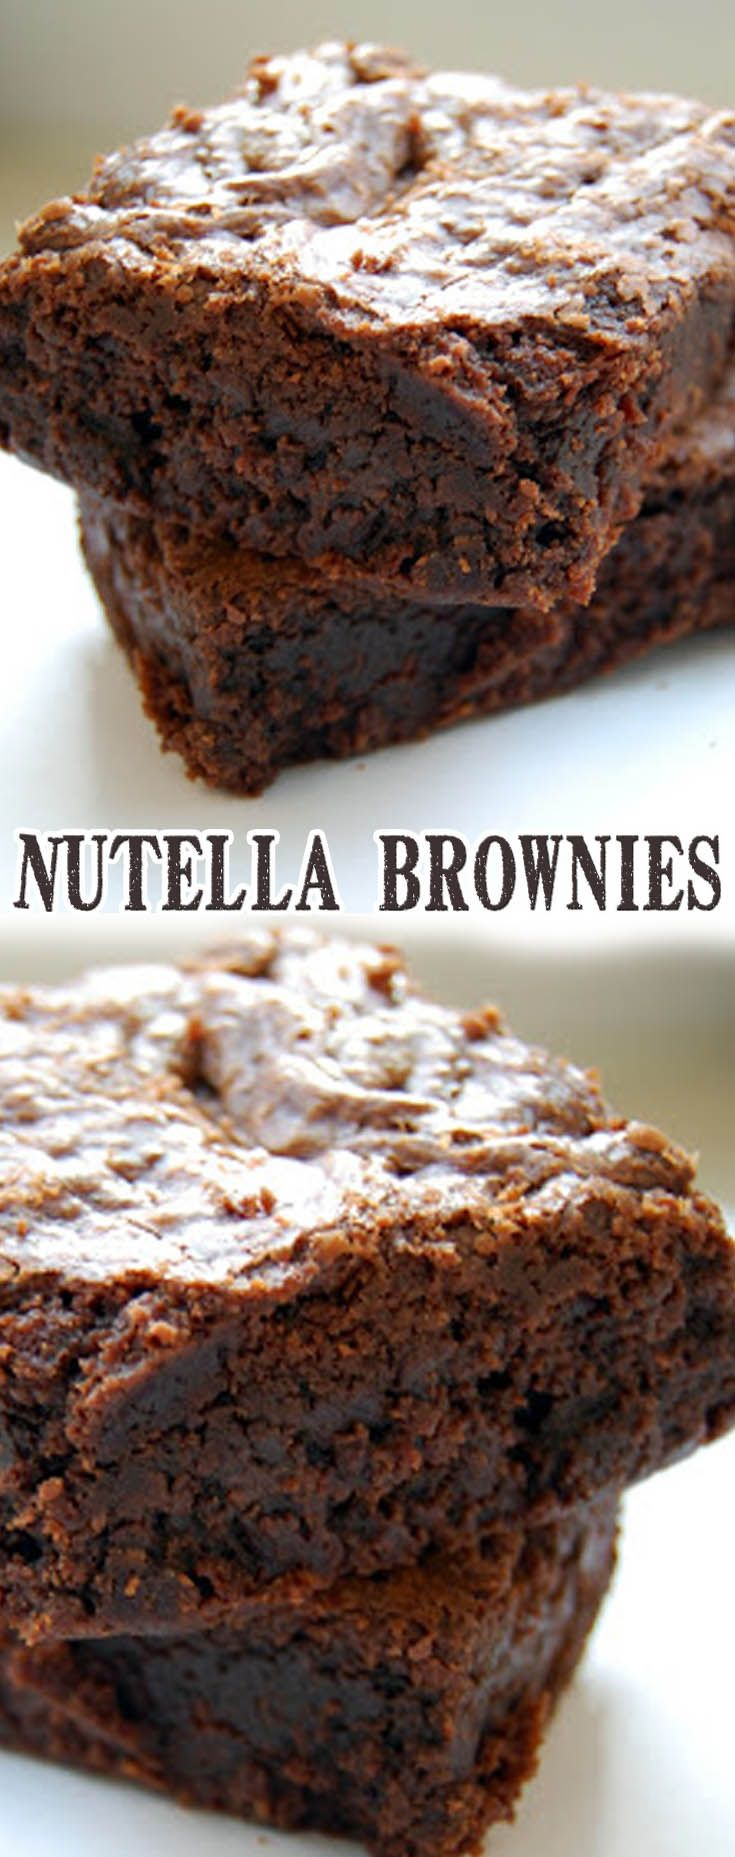 Nutella Brownies Recipe. #CompleteRecipes #recipe #recipes #food #foodgasm #cleaneating #healthyfood #healthy #healthyrecipes